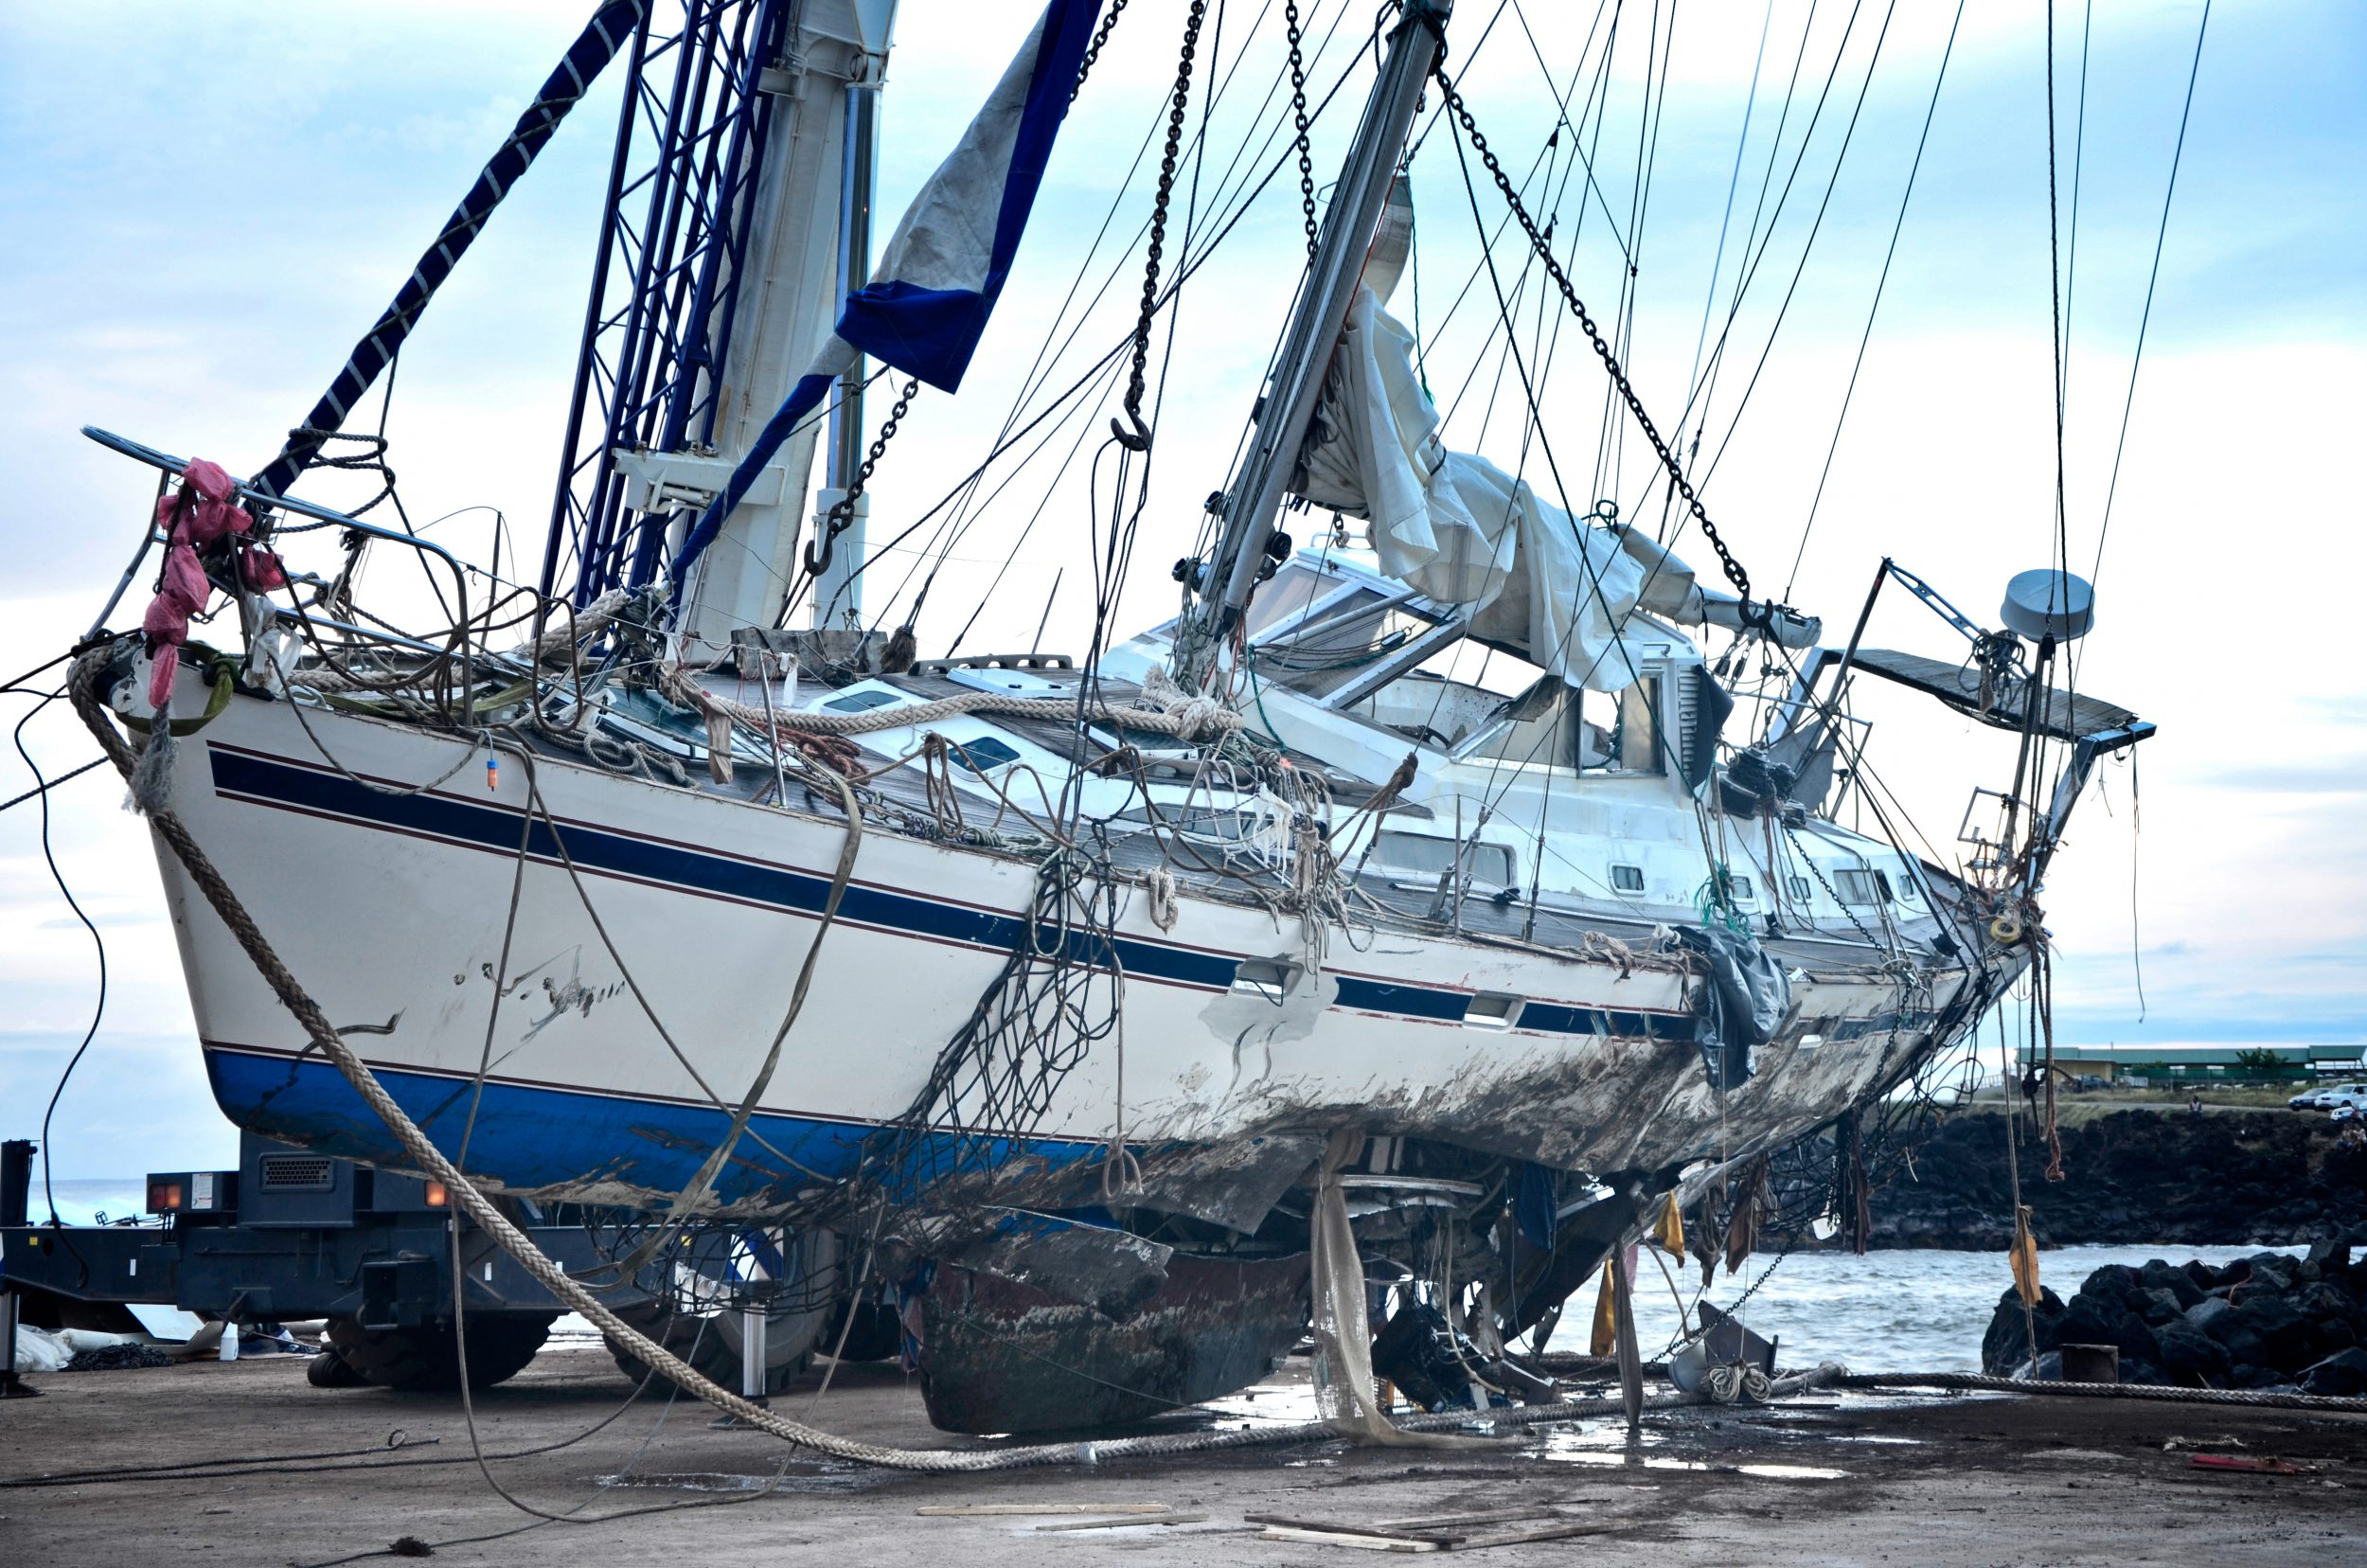 Pier Accidents in the Maritime Industry